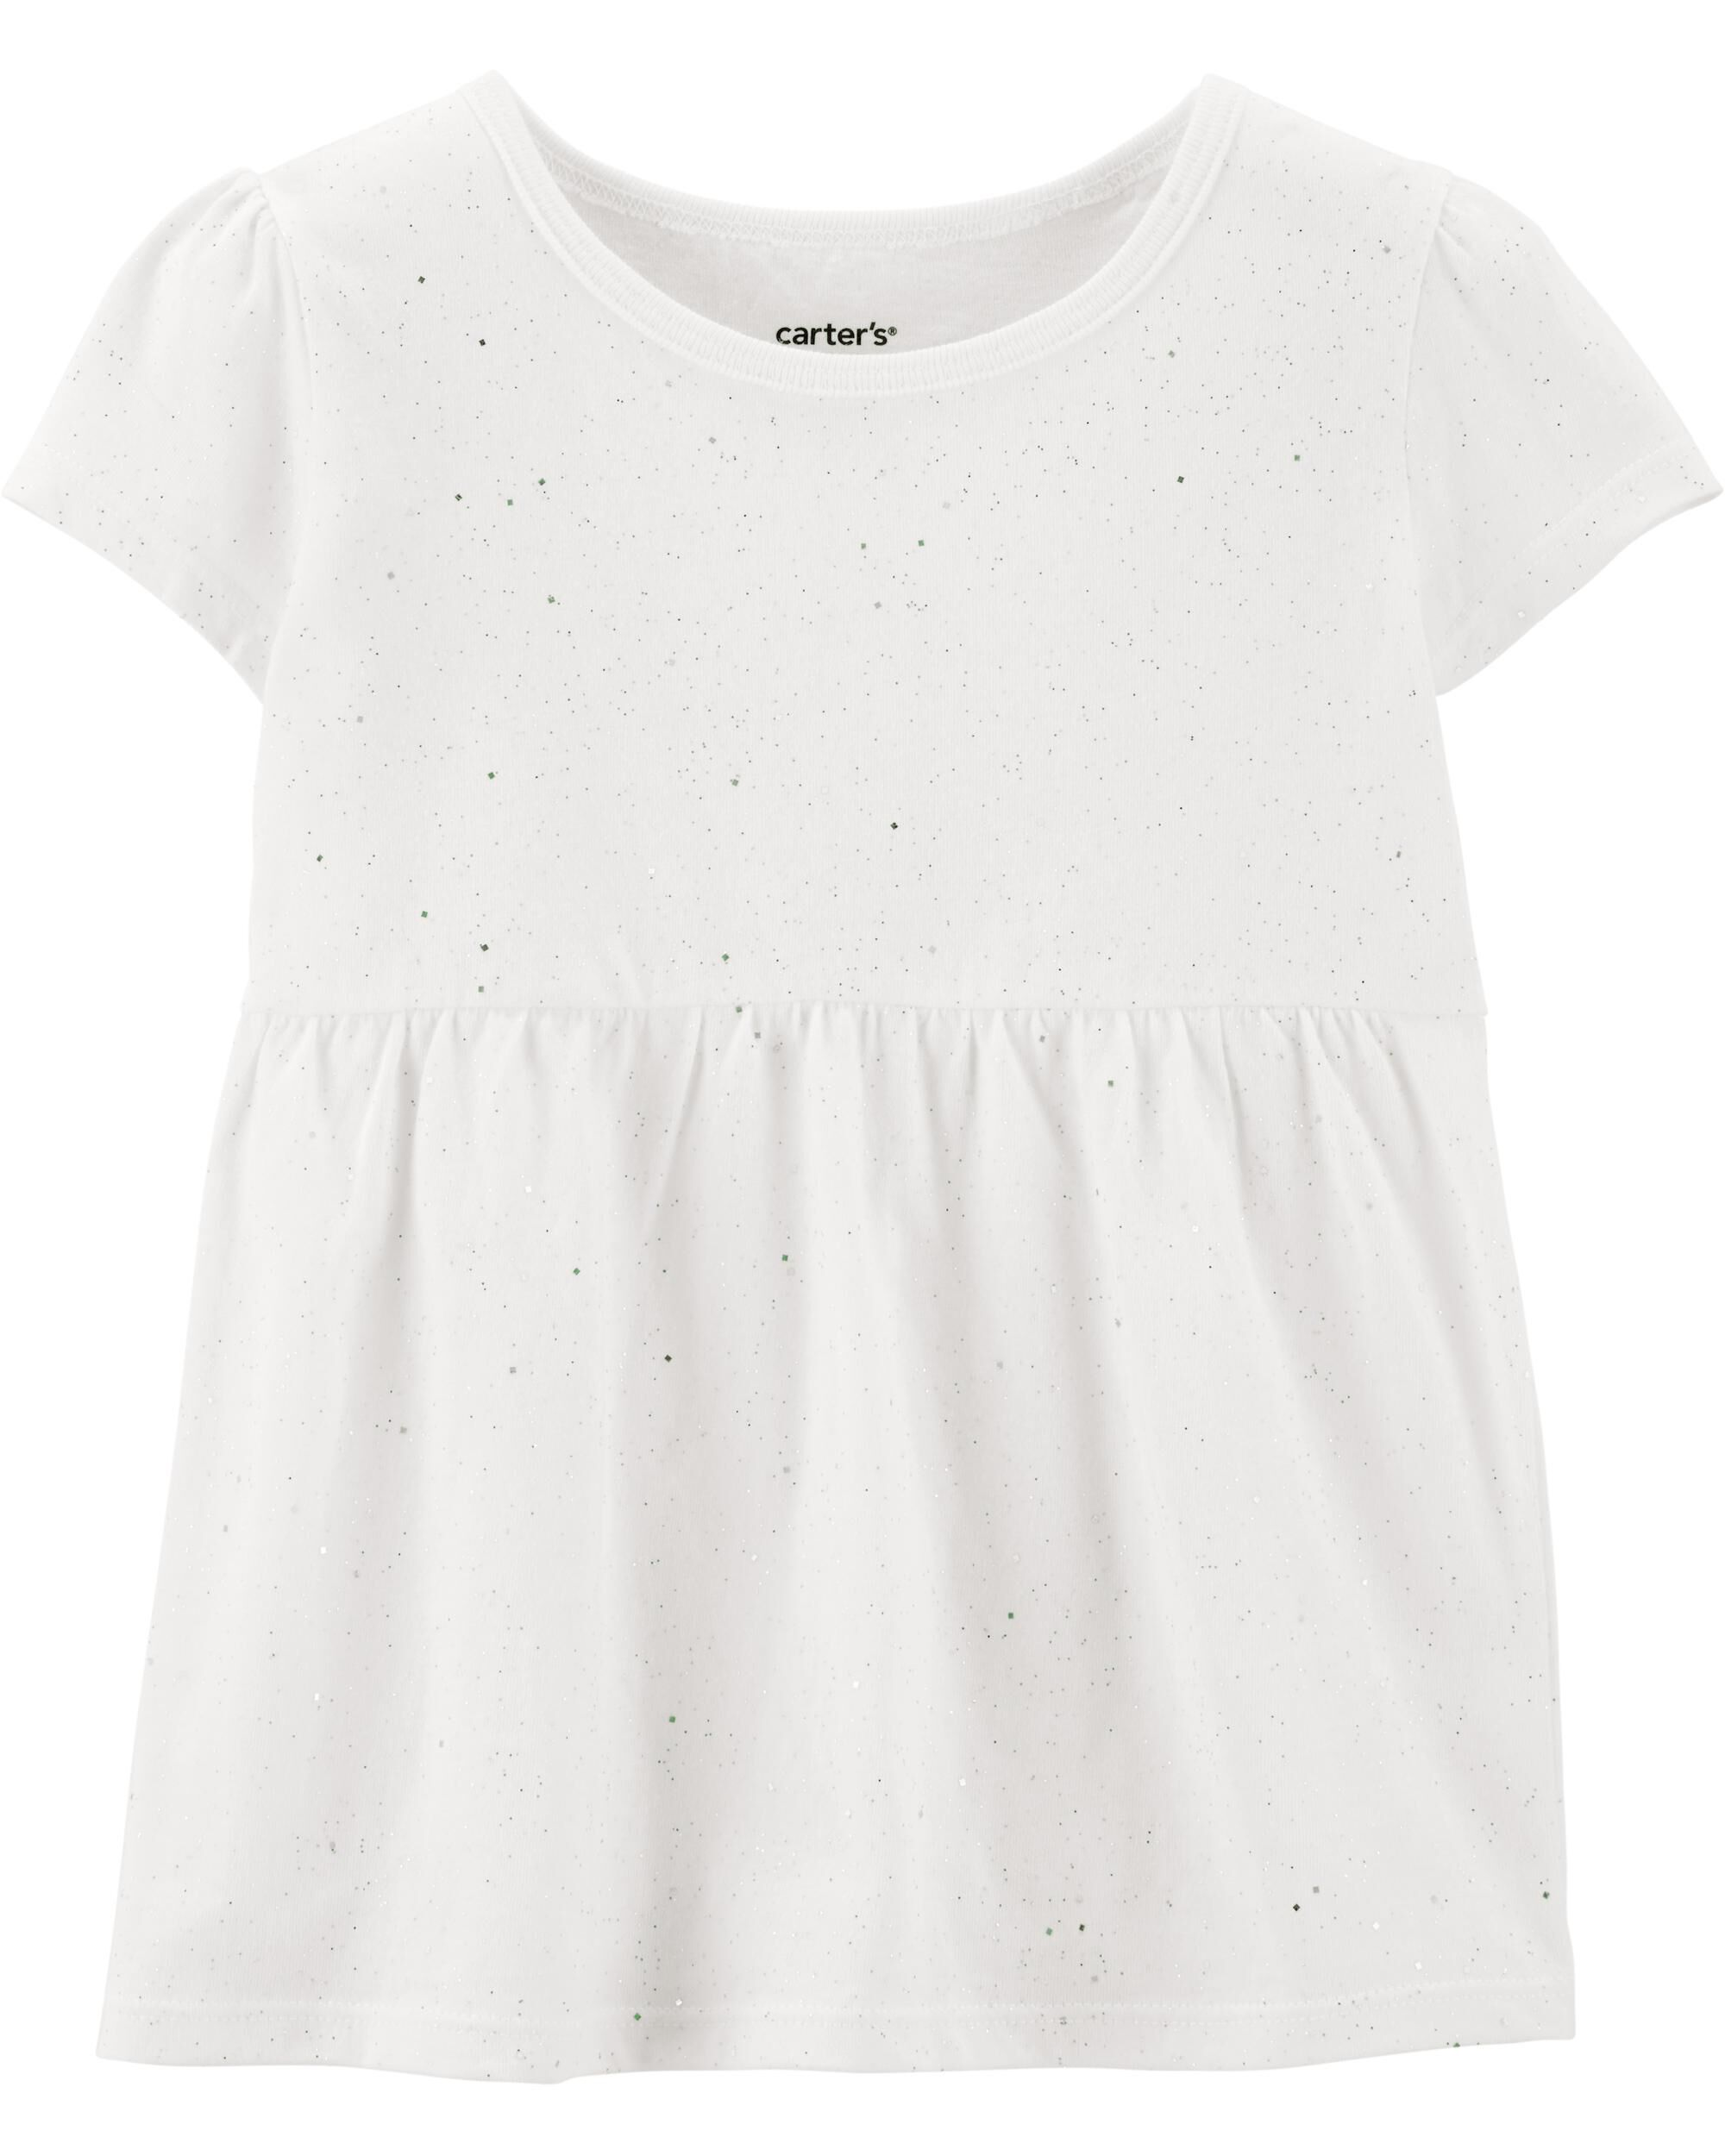 *Clearance*  Sparkly Jersey Top